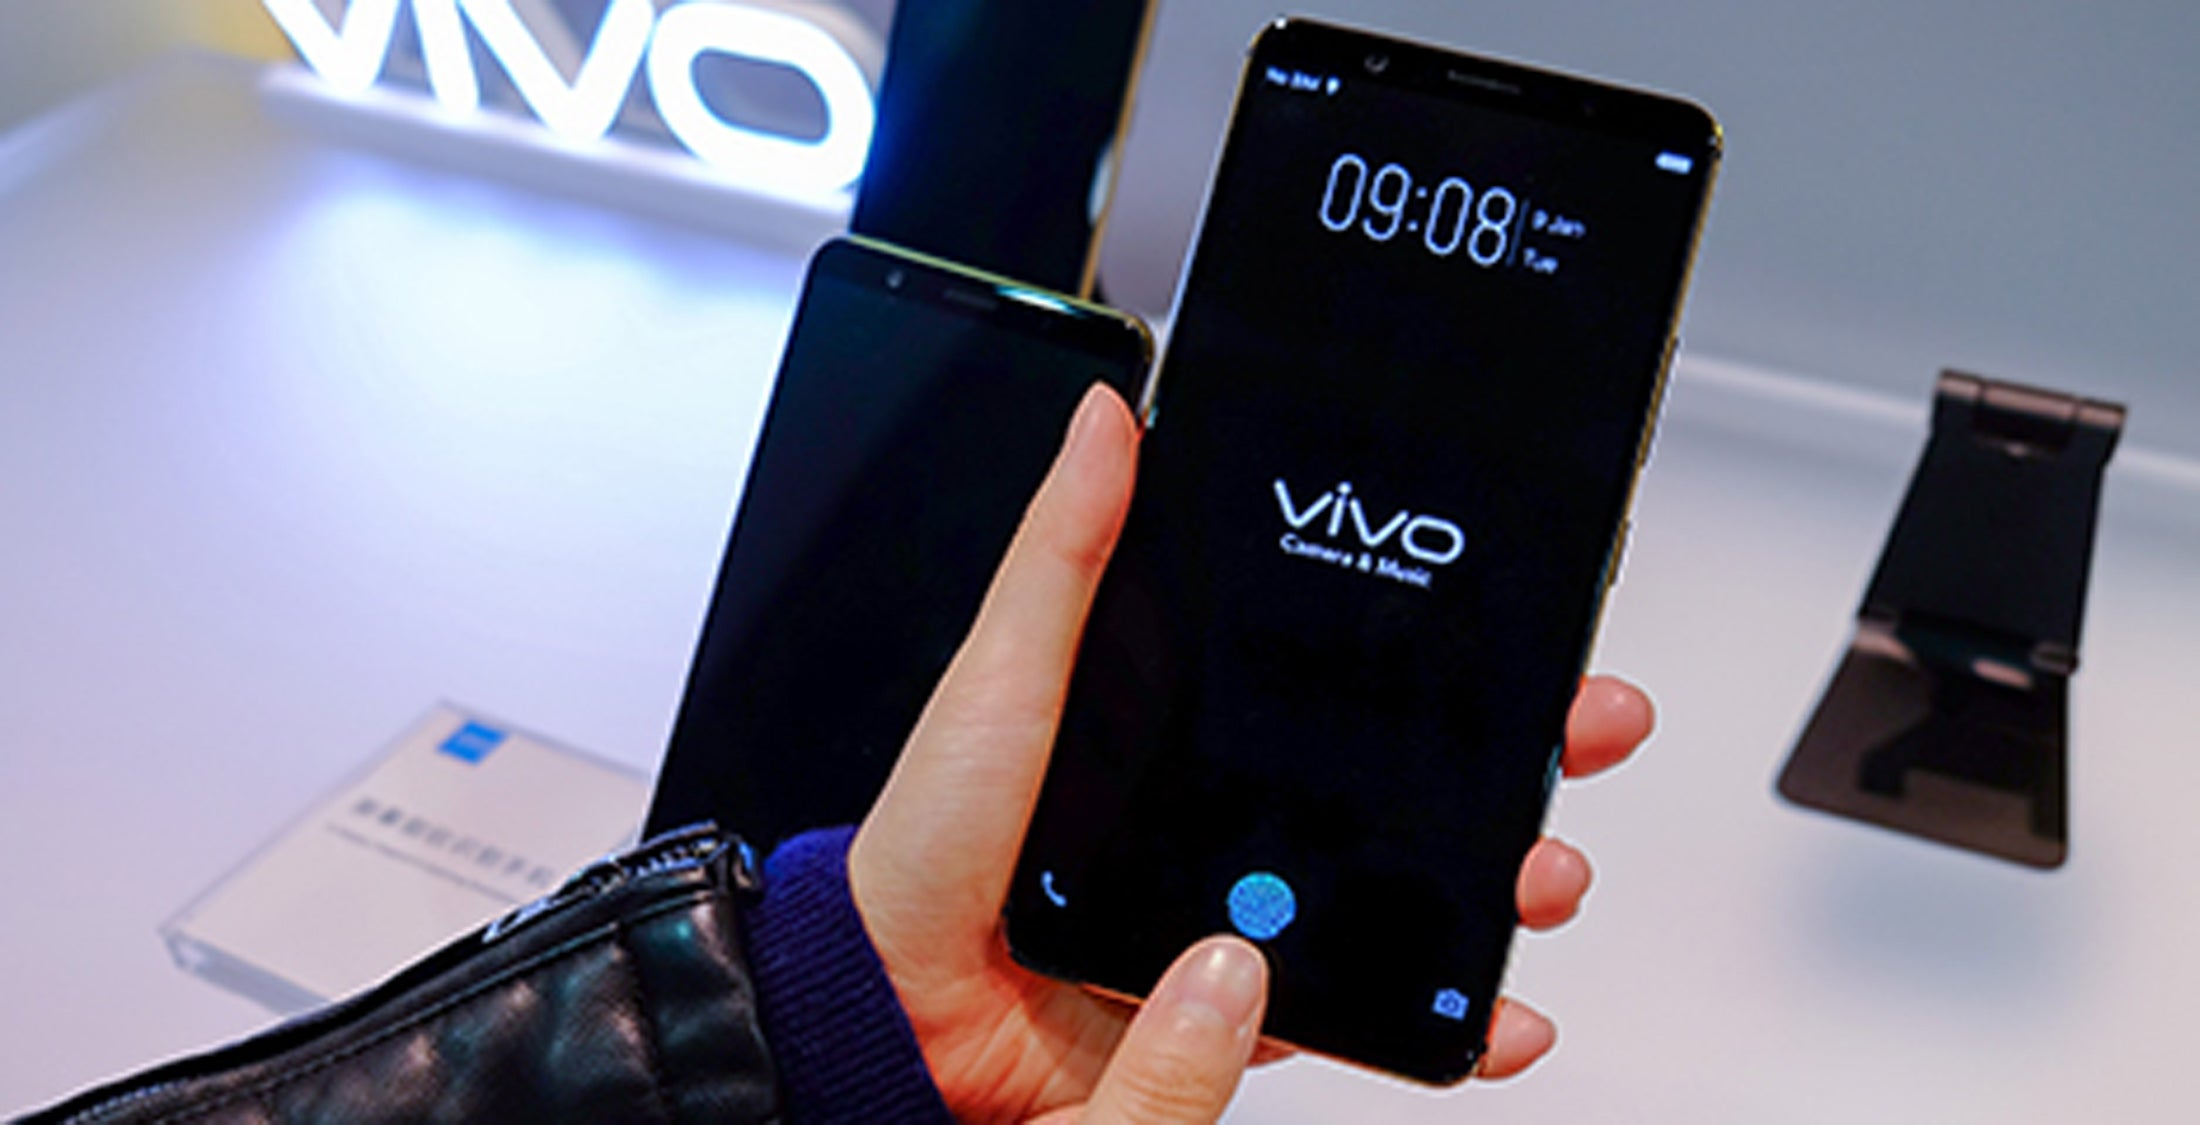 Vivo beats Apple and Samsung to 2018's top smartphone feature  Trusted Reviews